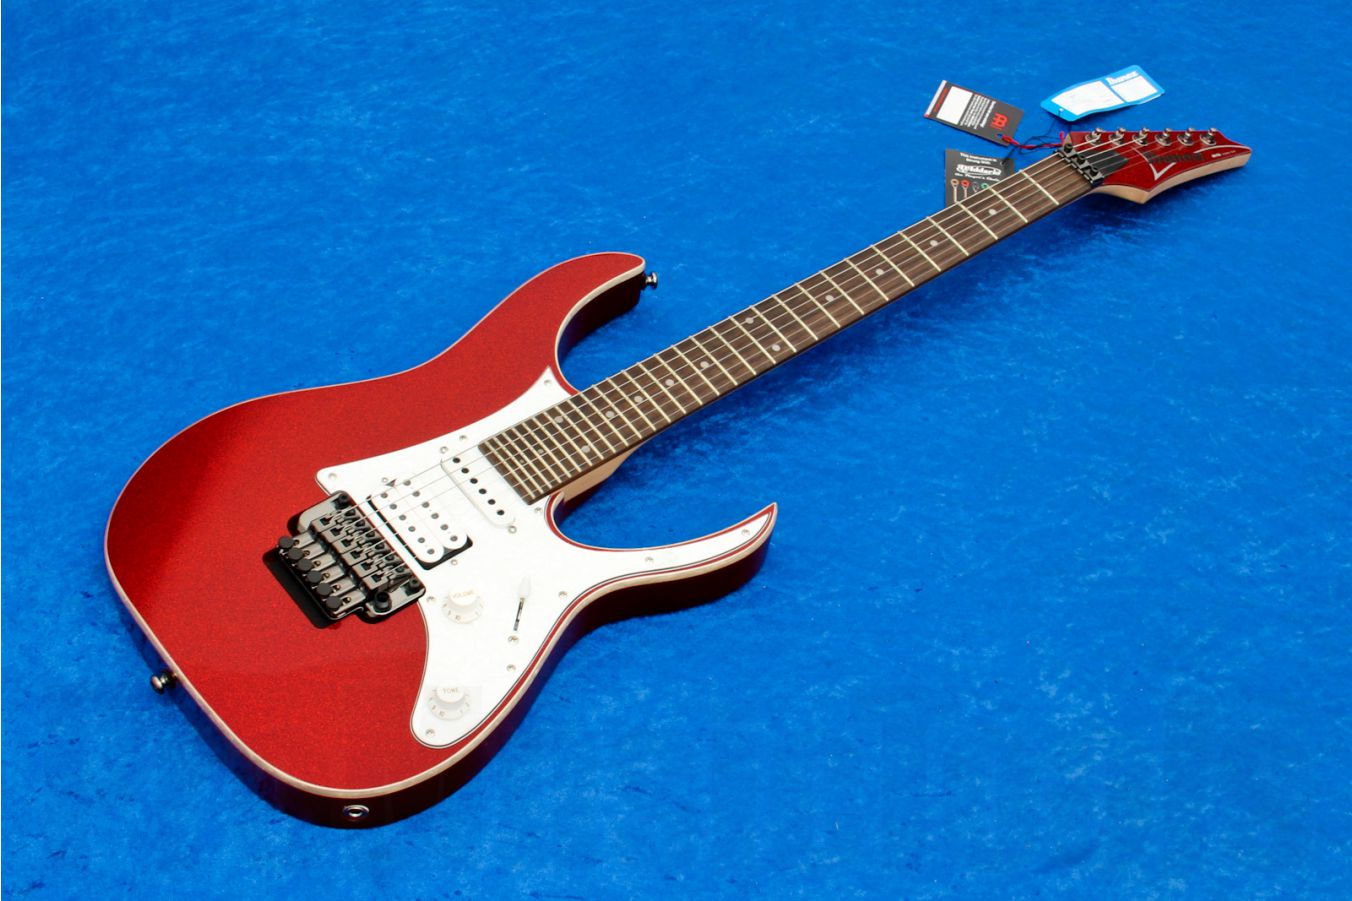 Ibanez RG550XH RSP - Red Sparkle - b-stock (1x opened box)